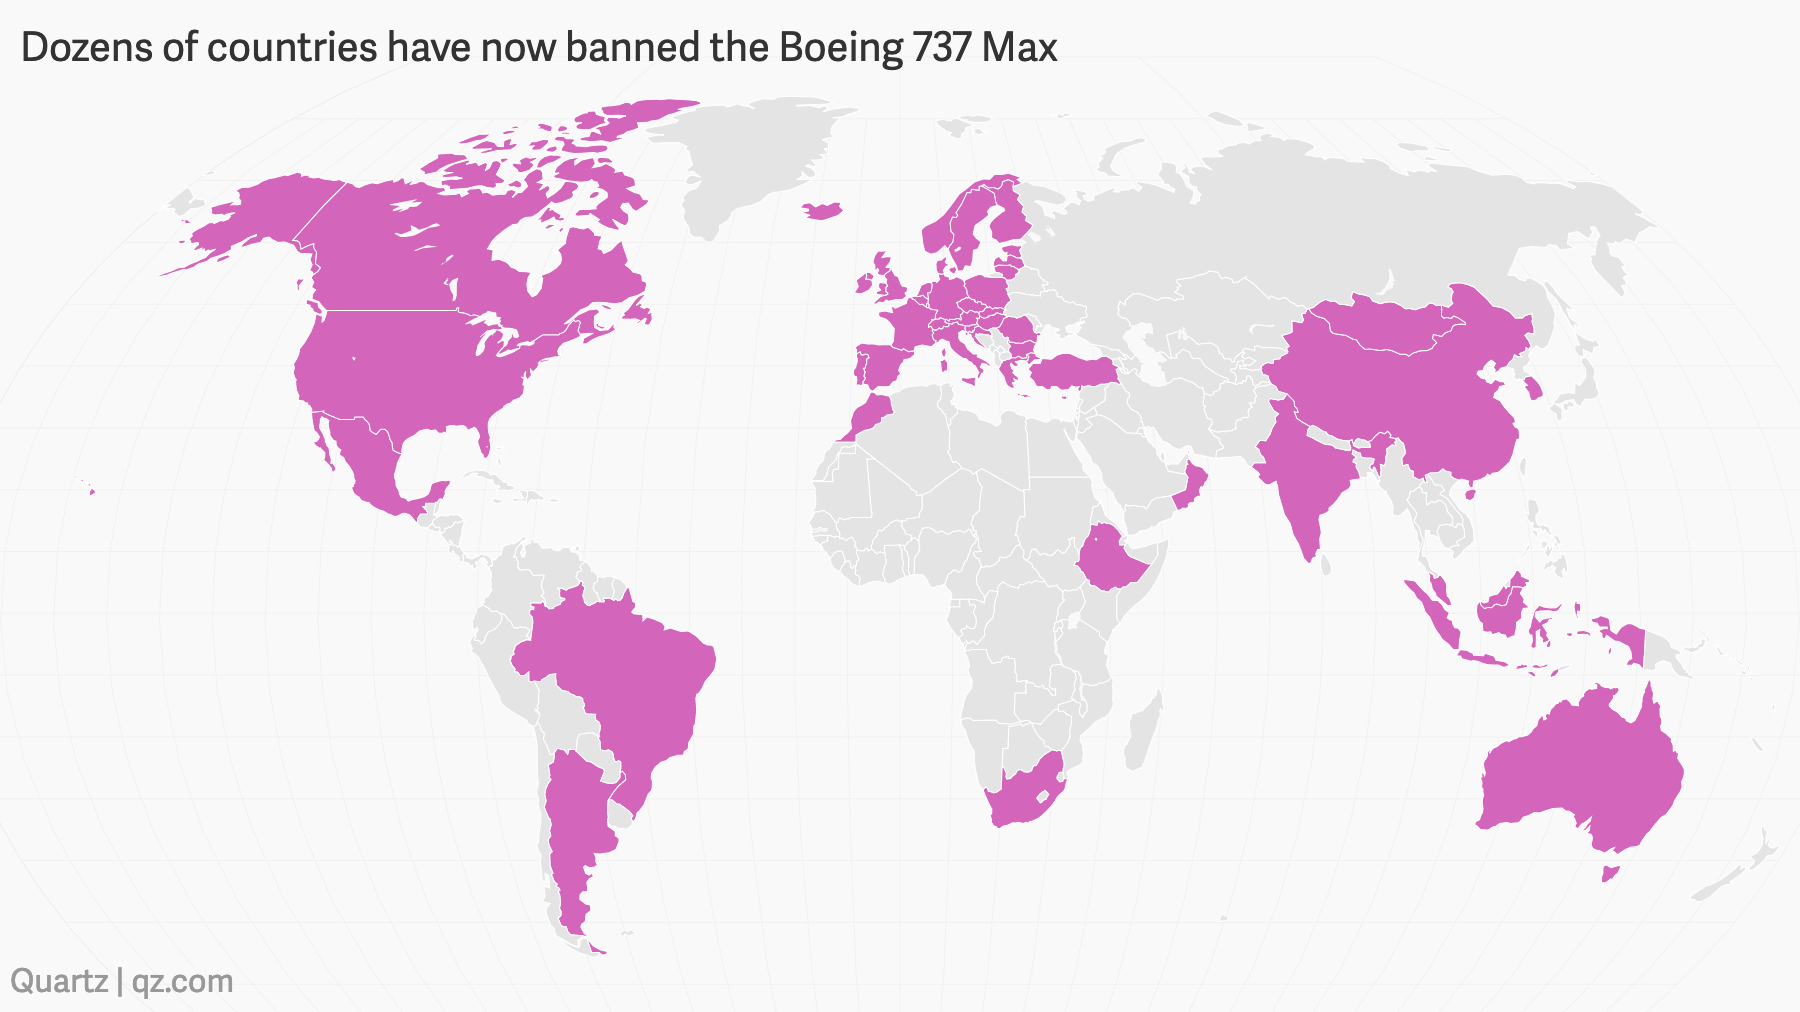 https://cms.qz.com/wp-content/uploads/2019/03/Dozens-of-countries-have-now-banned-the-Boeing-737-Max_mapbuilder-3.png